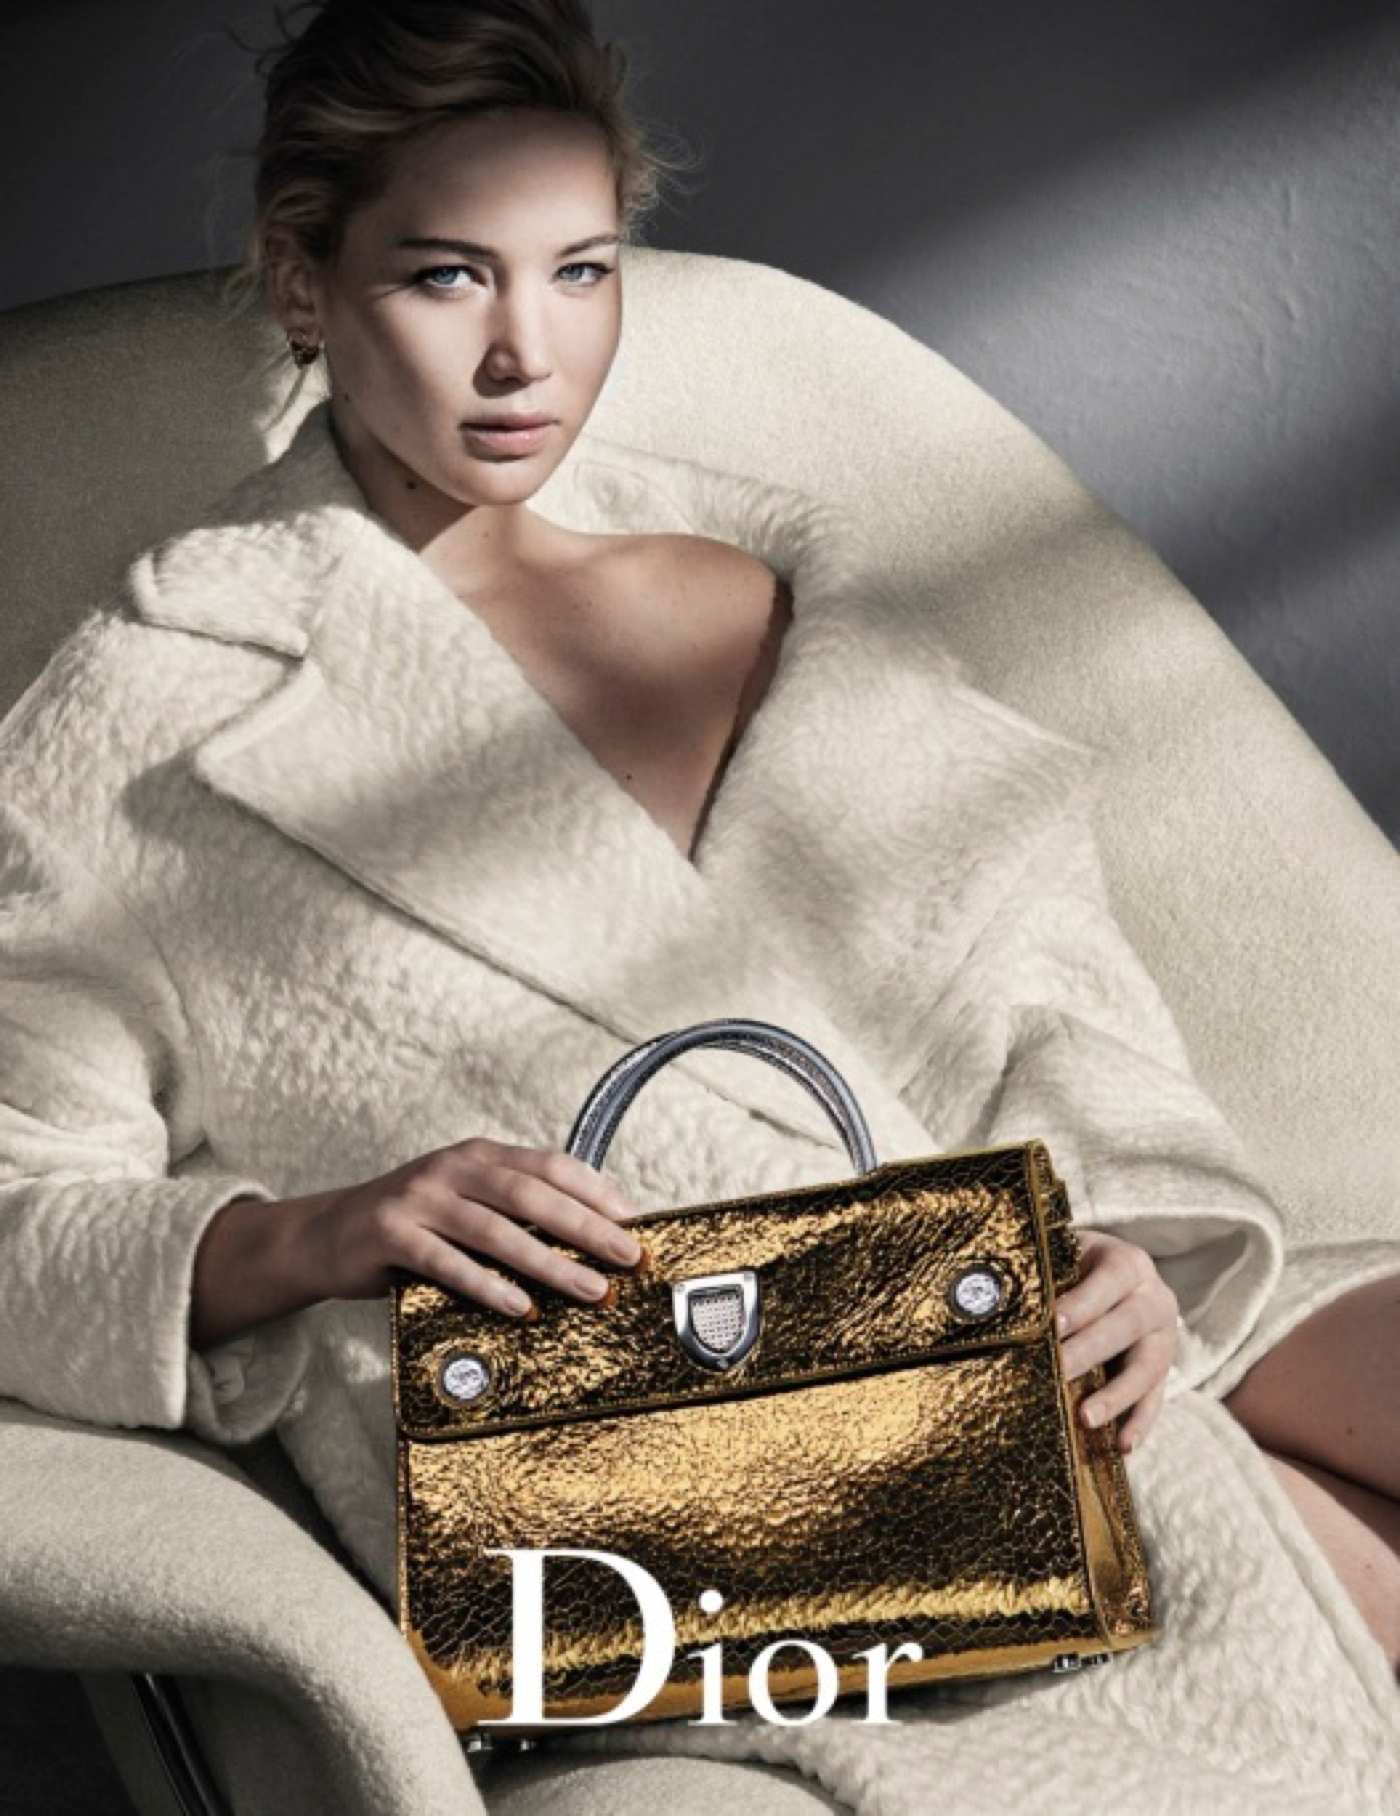 Jennifer Lawrence stars in the New Dior Fall Winter 2016 Handbag Ad Campaign 2